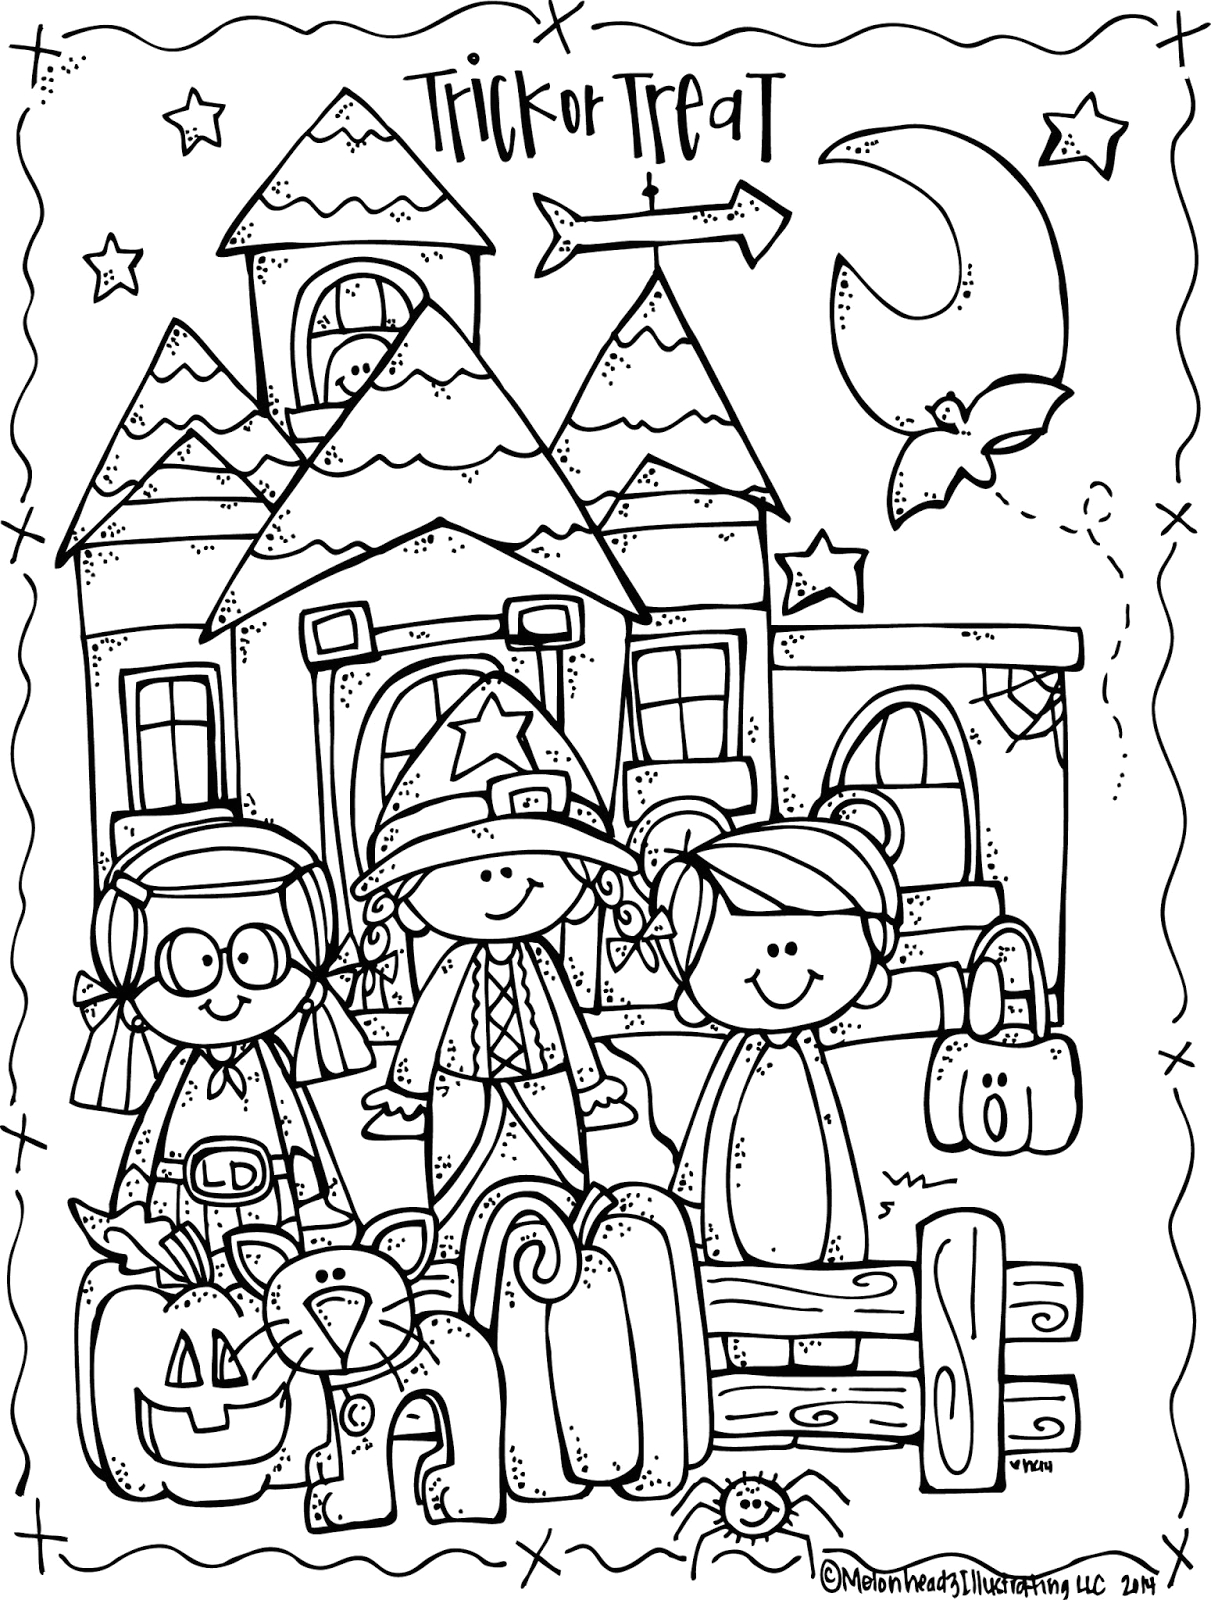 Free Printable Halloween Coloring Pages and Activities Melonheadz Lucy Doris Halloween Coloring Page Freebie